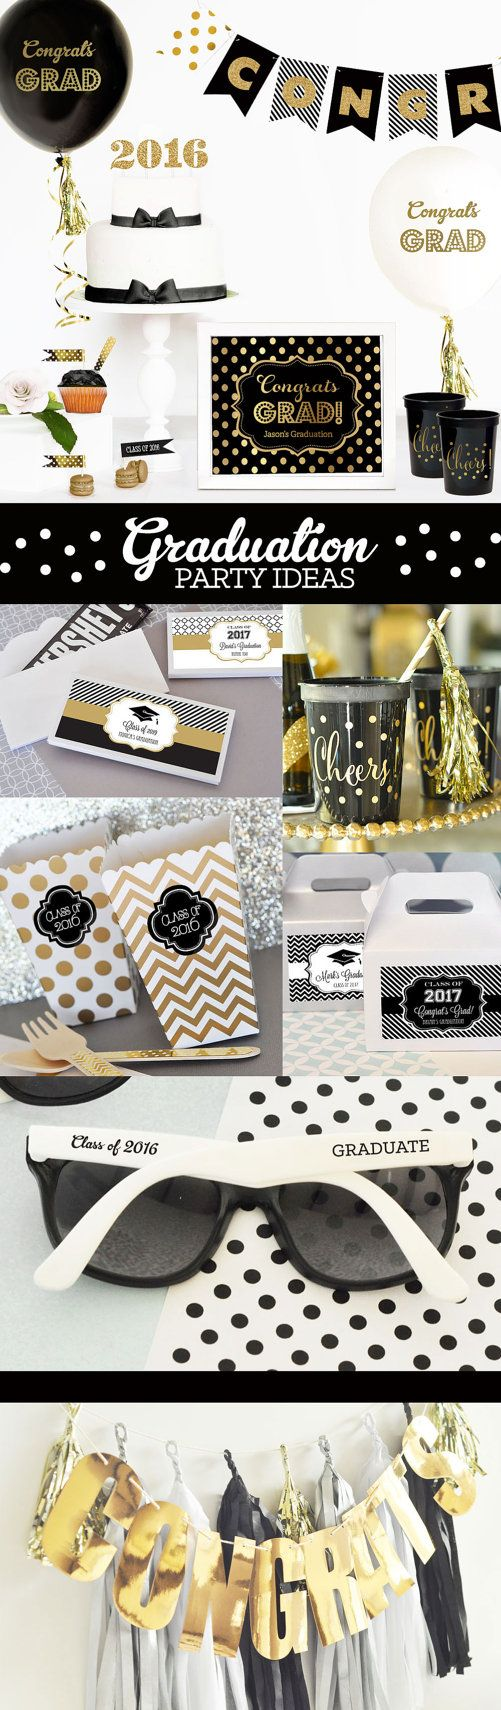 Graduation Party Ideas for a black and gold graduation party theme! 2016 Graduation Balloons make the perfect graduation gift for the high school graduation grad party!